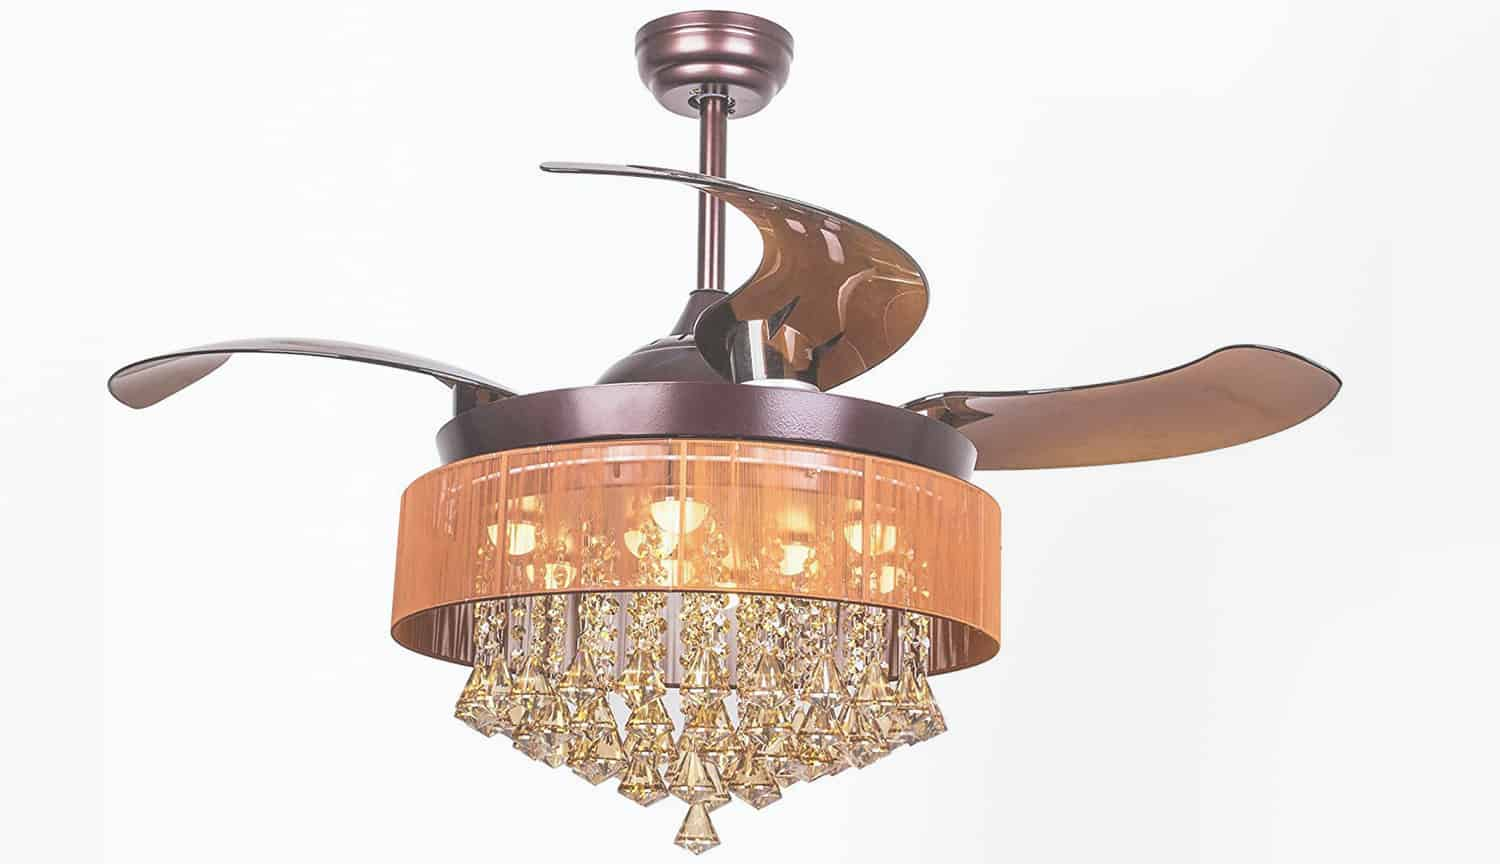 Indoor ceiling fan as the third related product of smart ceiling fan